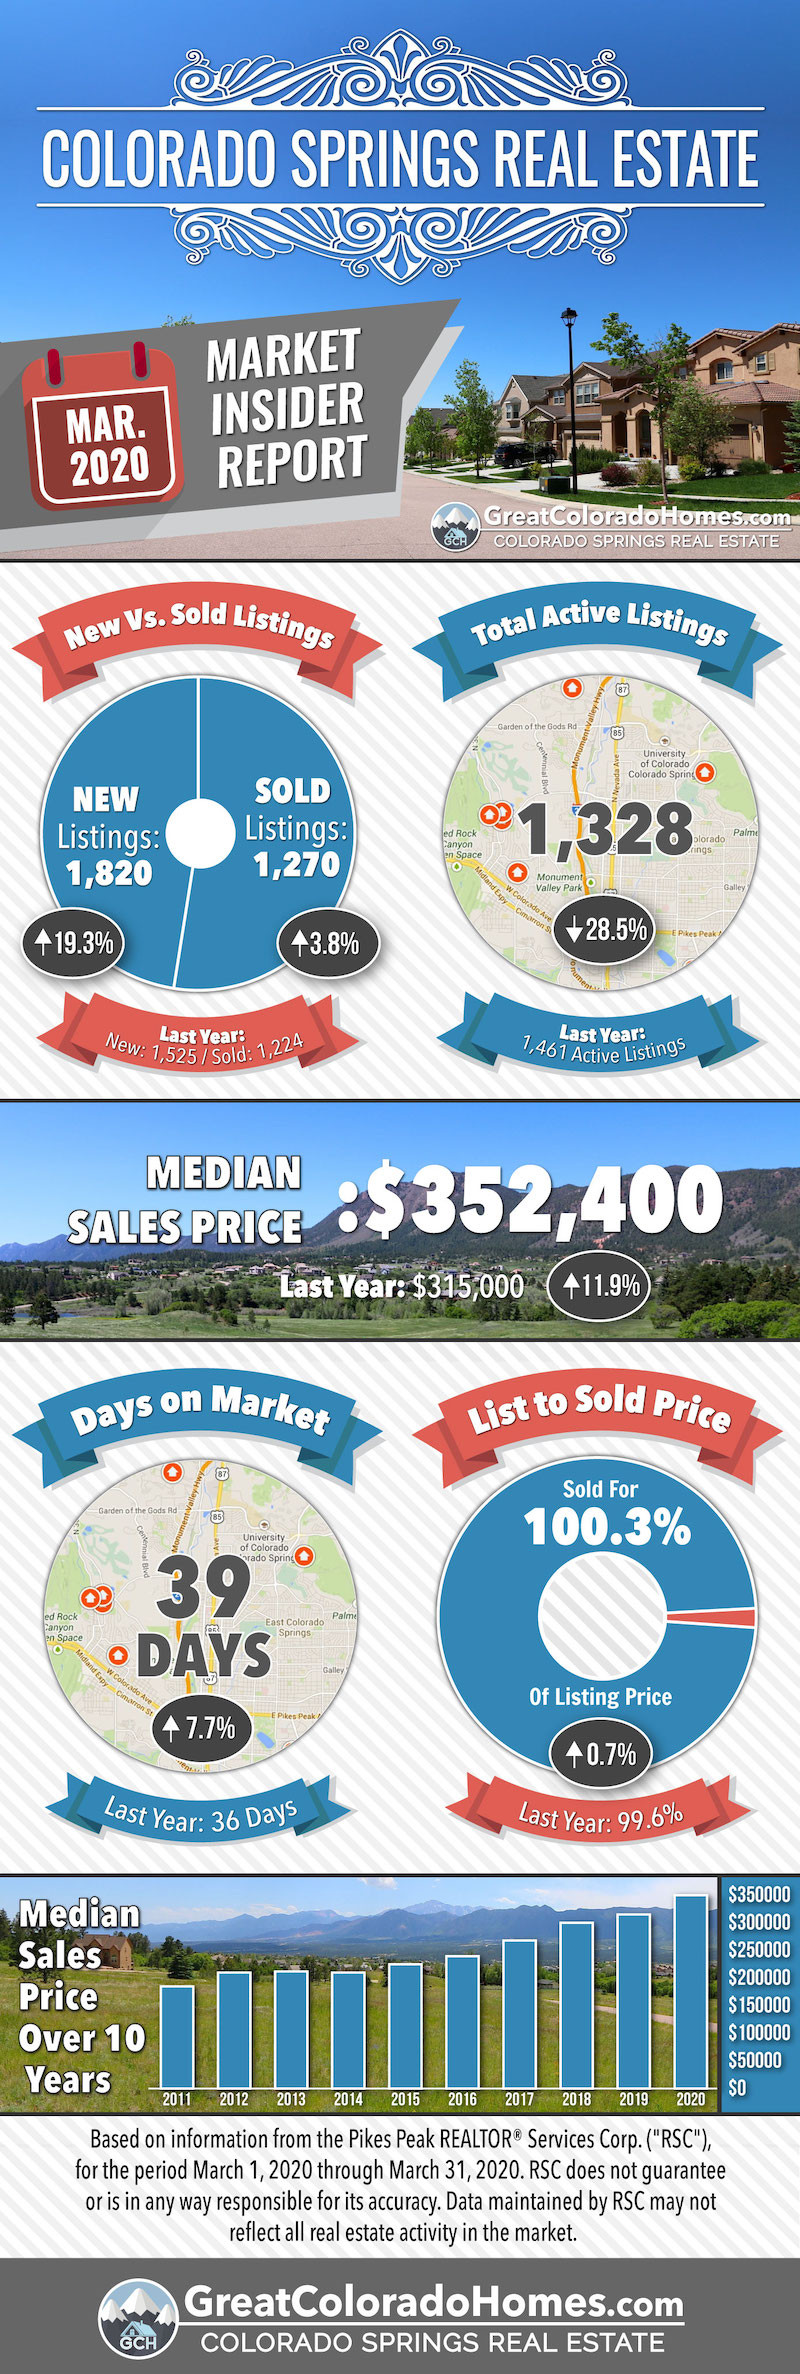 March 2020 Colorado Springs Real Estate Market Statistics Infographic